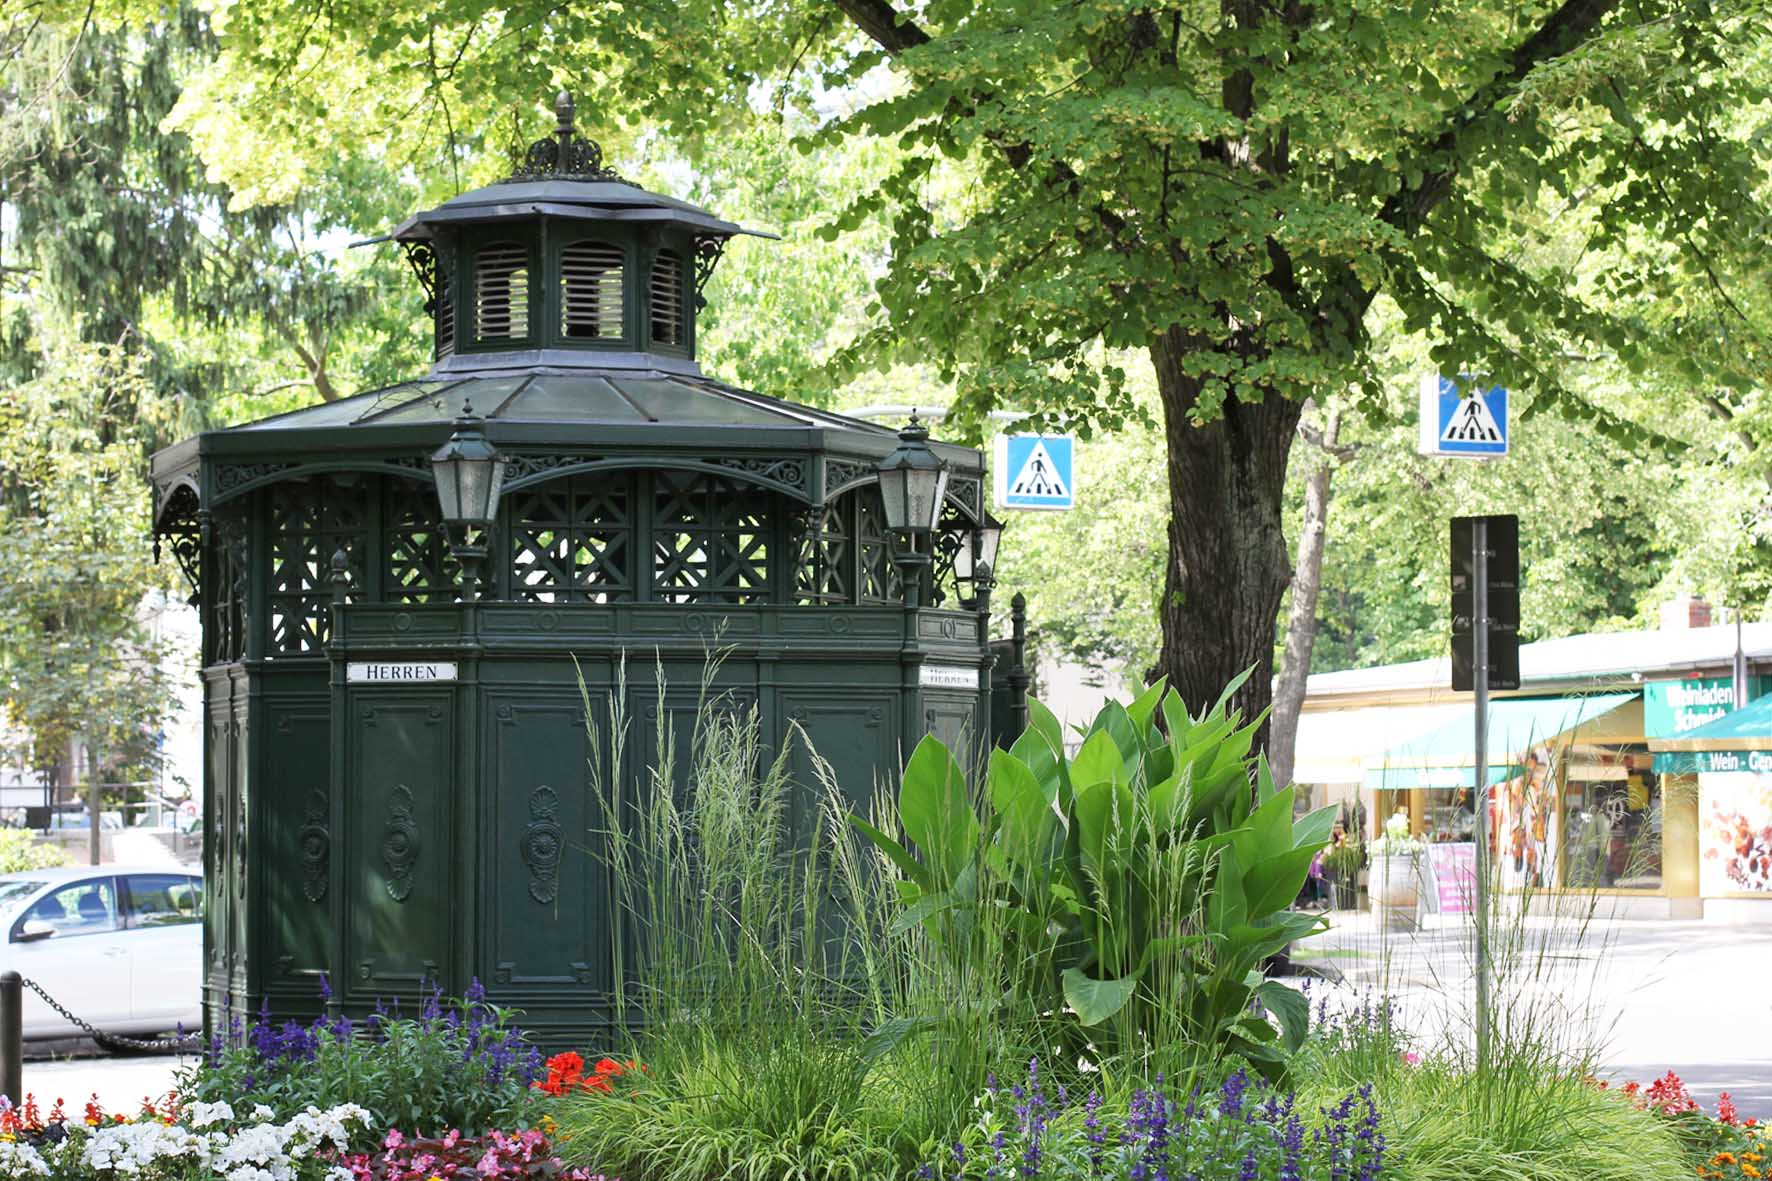 Café Achteck - Fellbacher Platz - an example of Berlin's classic 19th century green cast iron public toilets